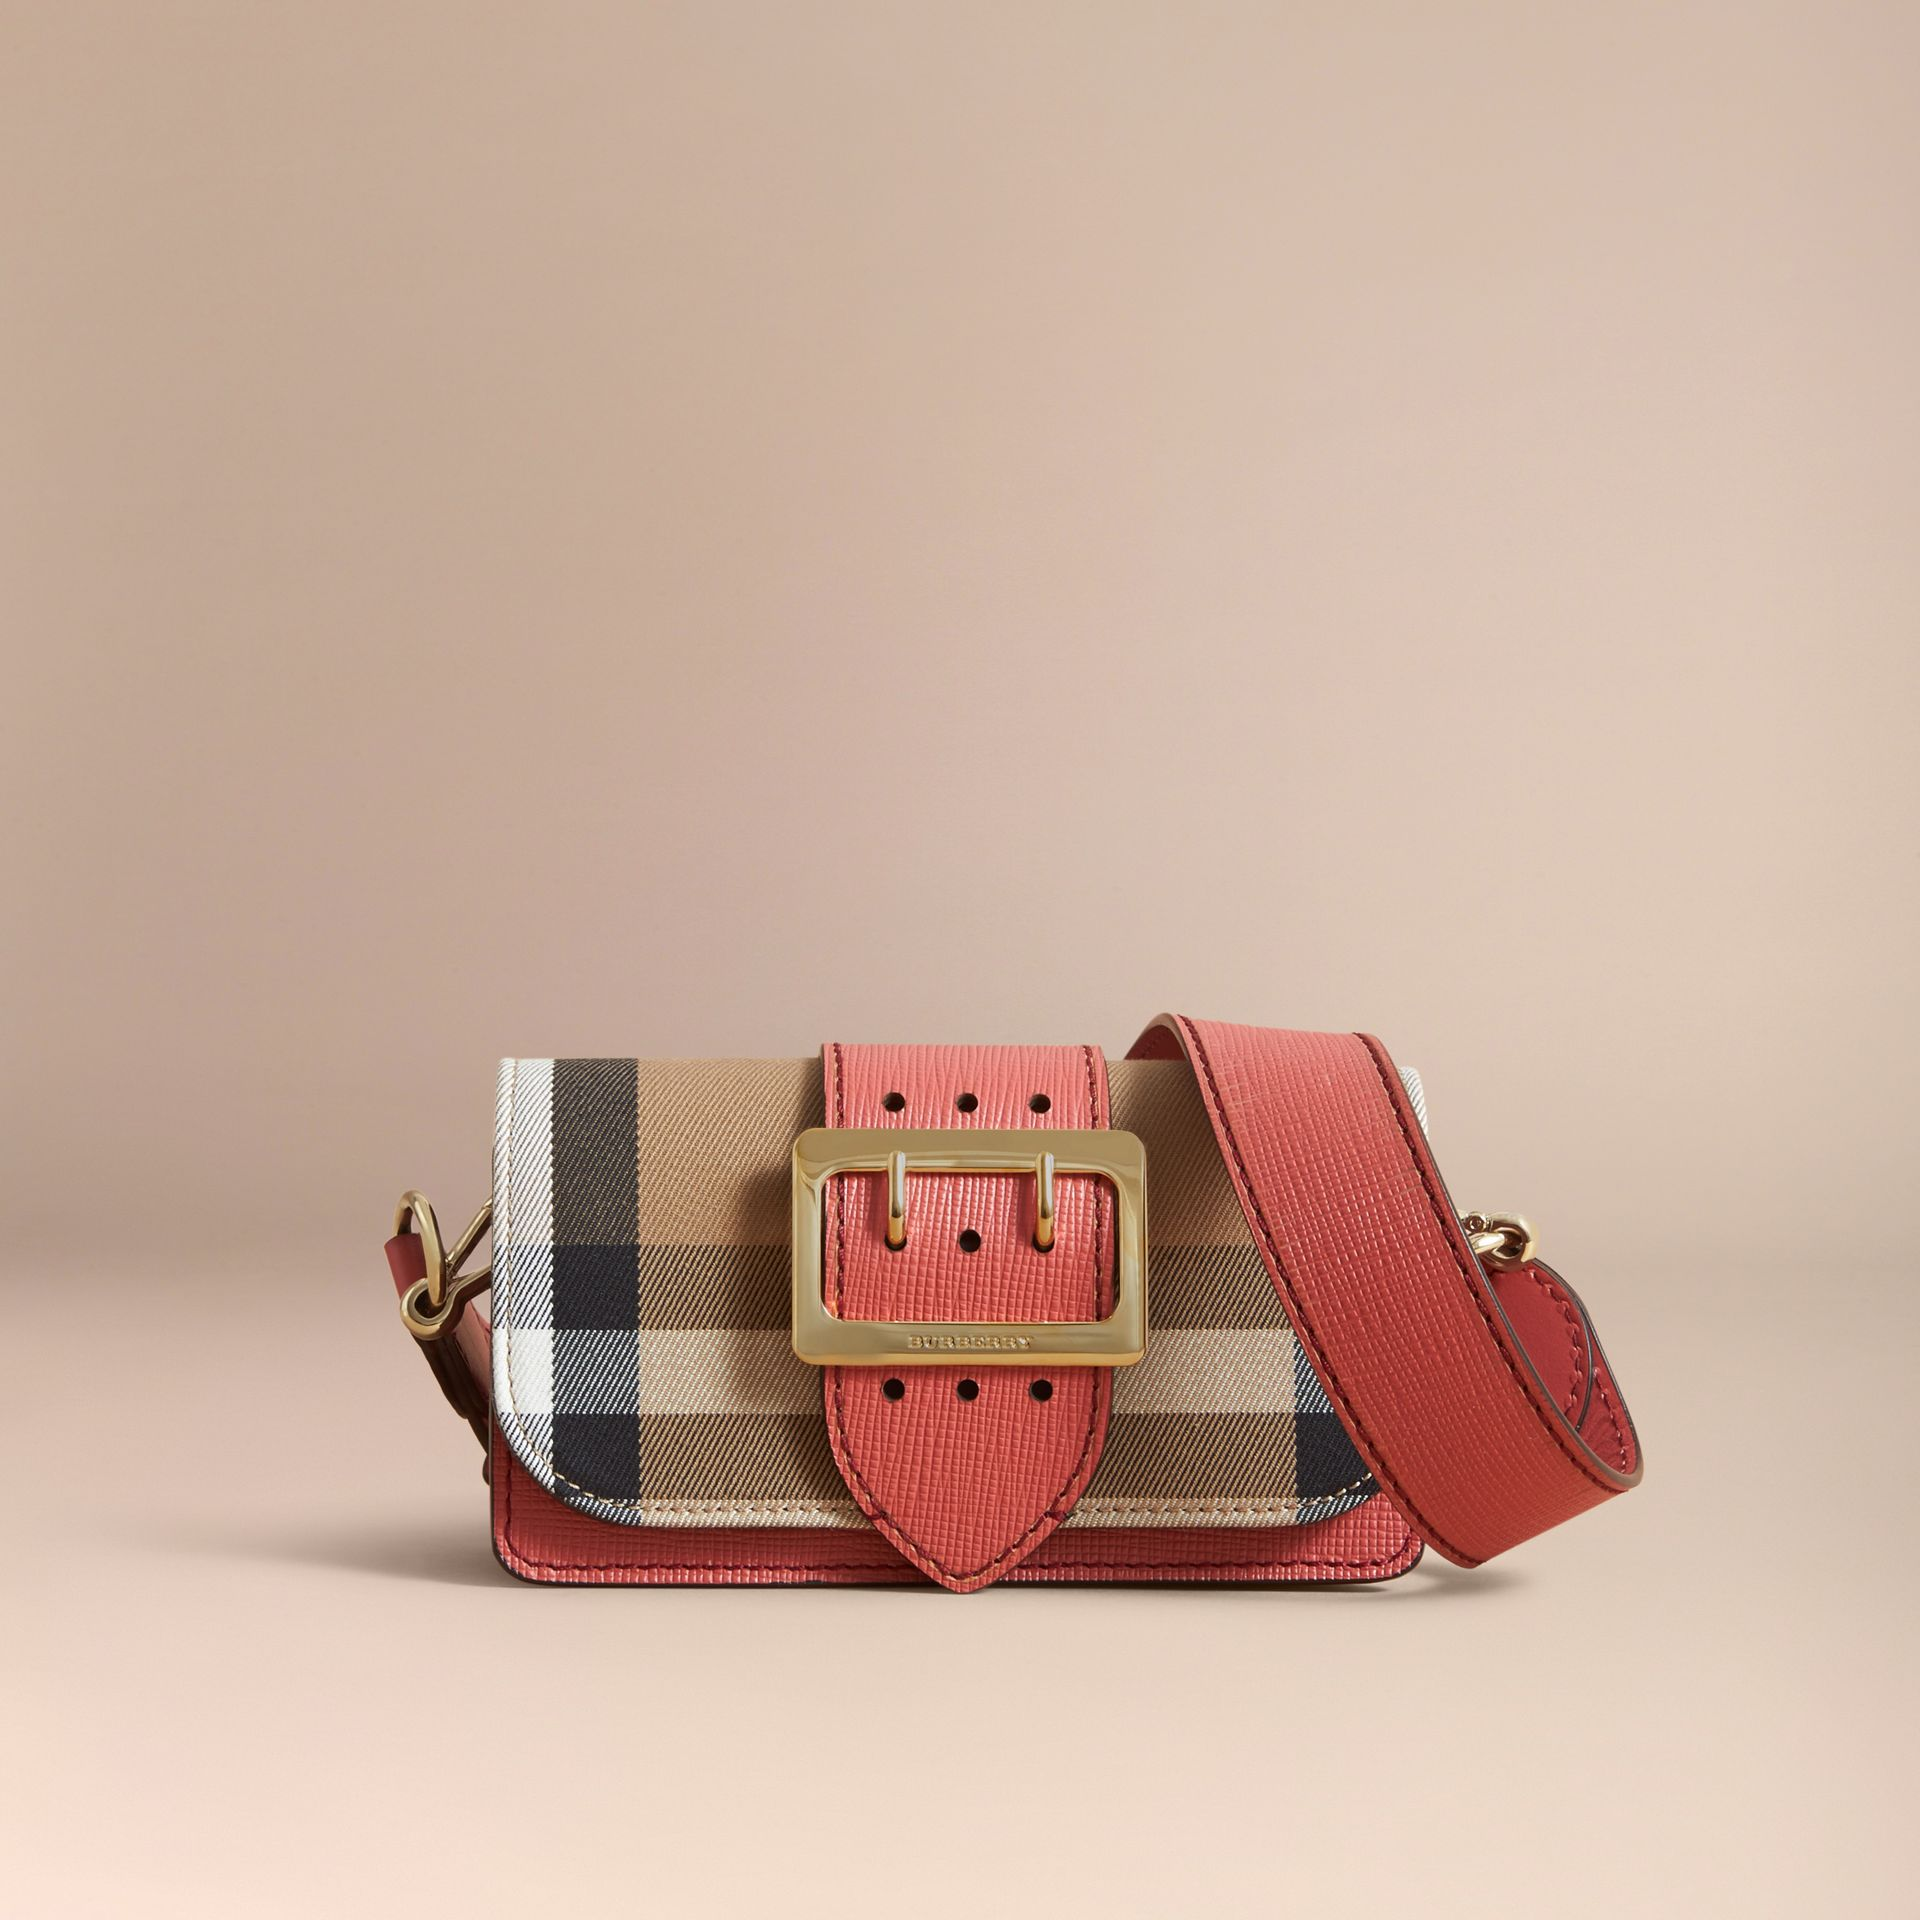 The Small Buckle Bag in House Check and Leather in Cinnamon Red - Women | Burberry - gallery image 7